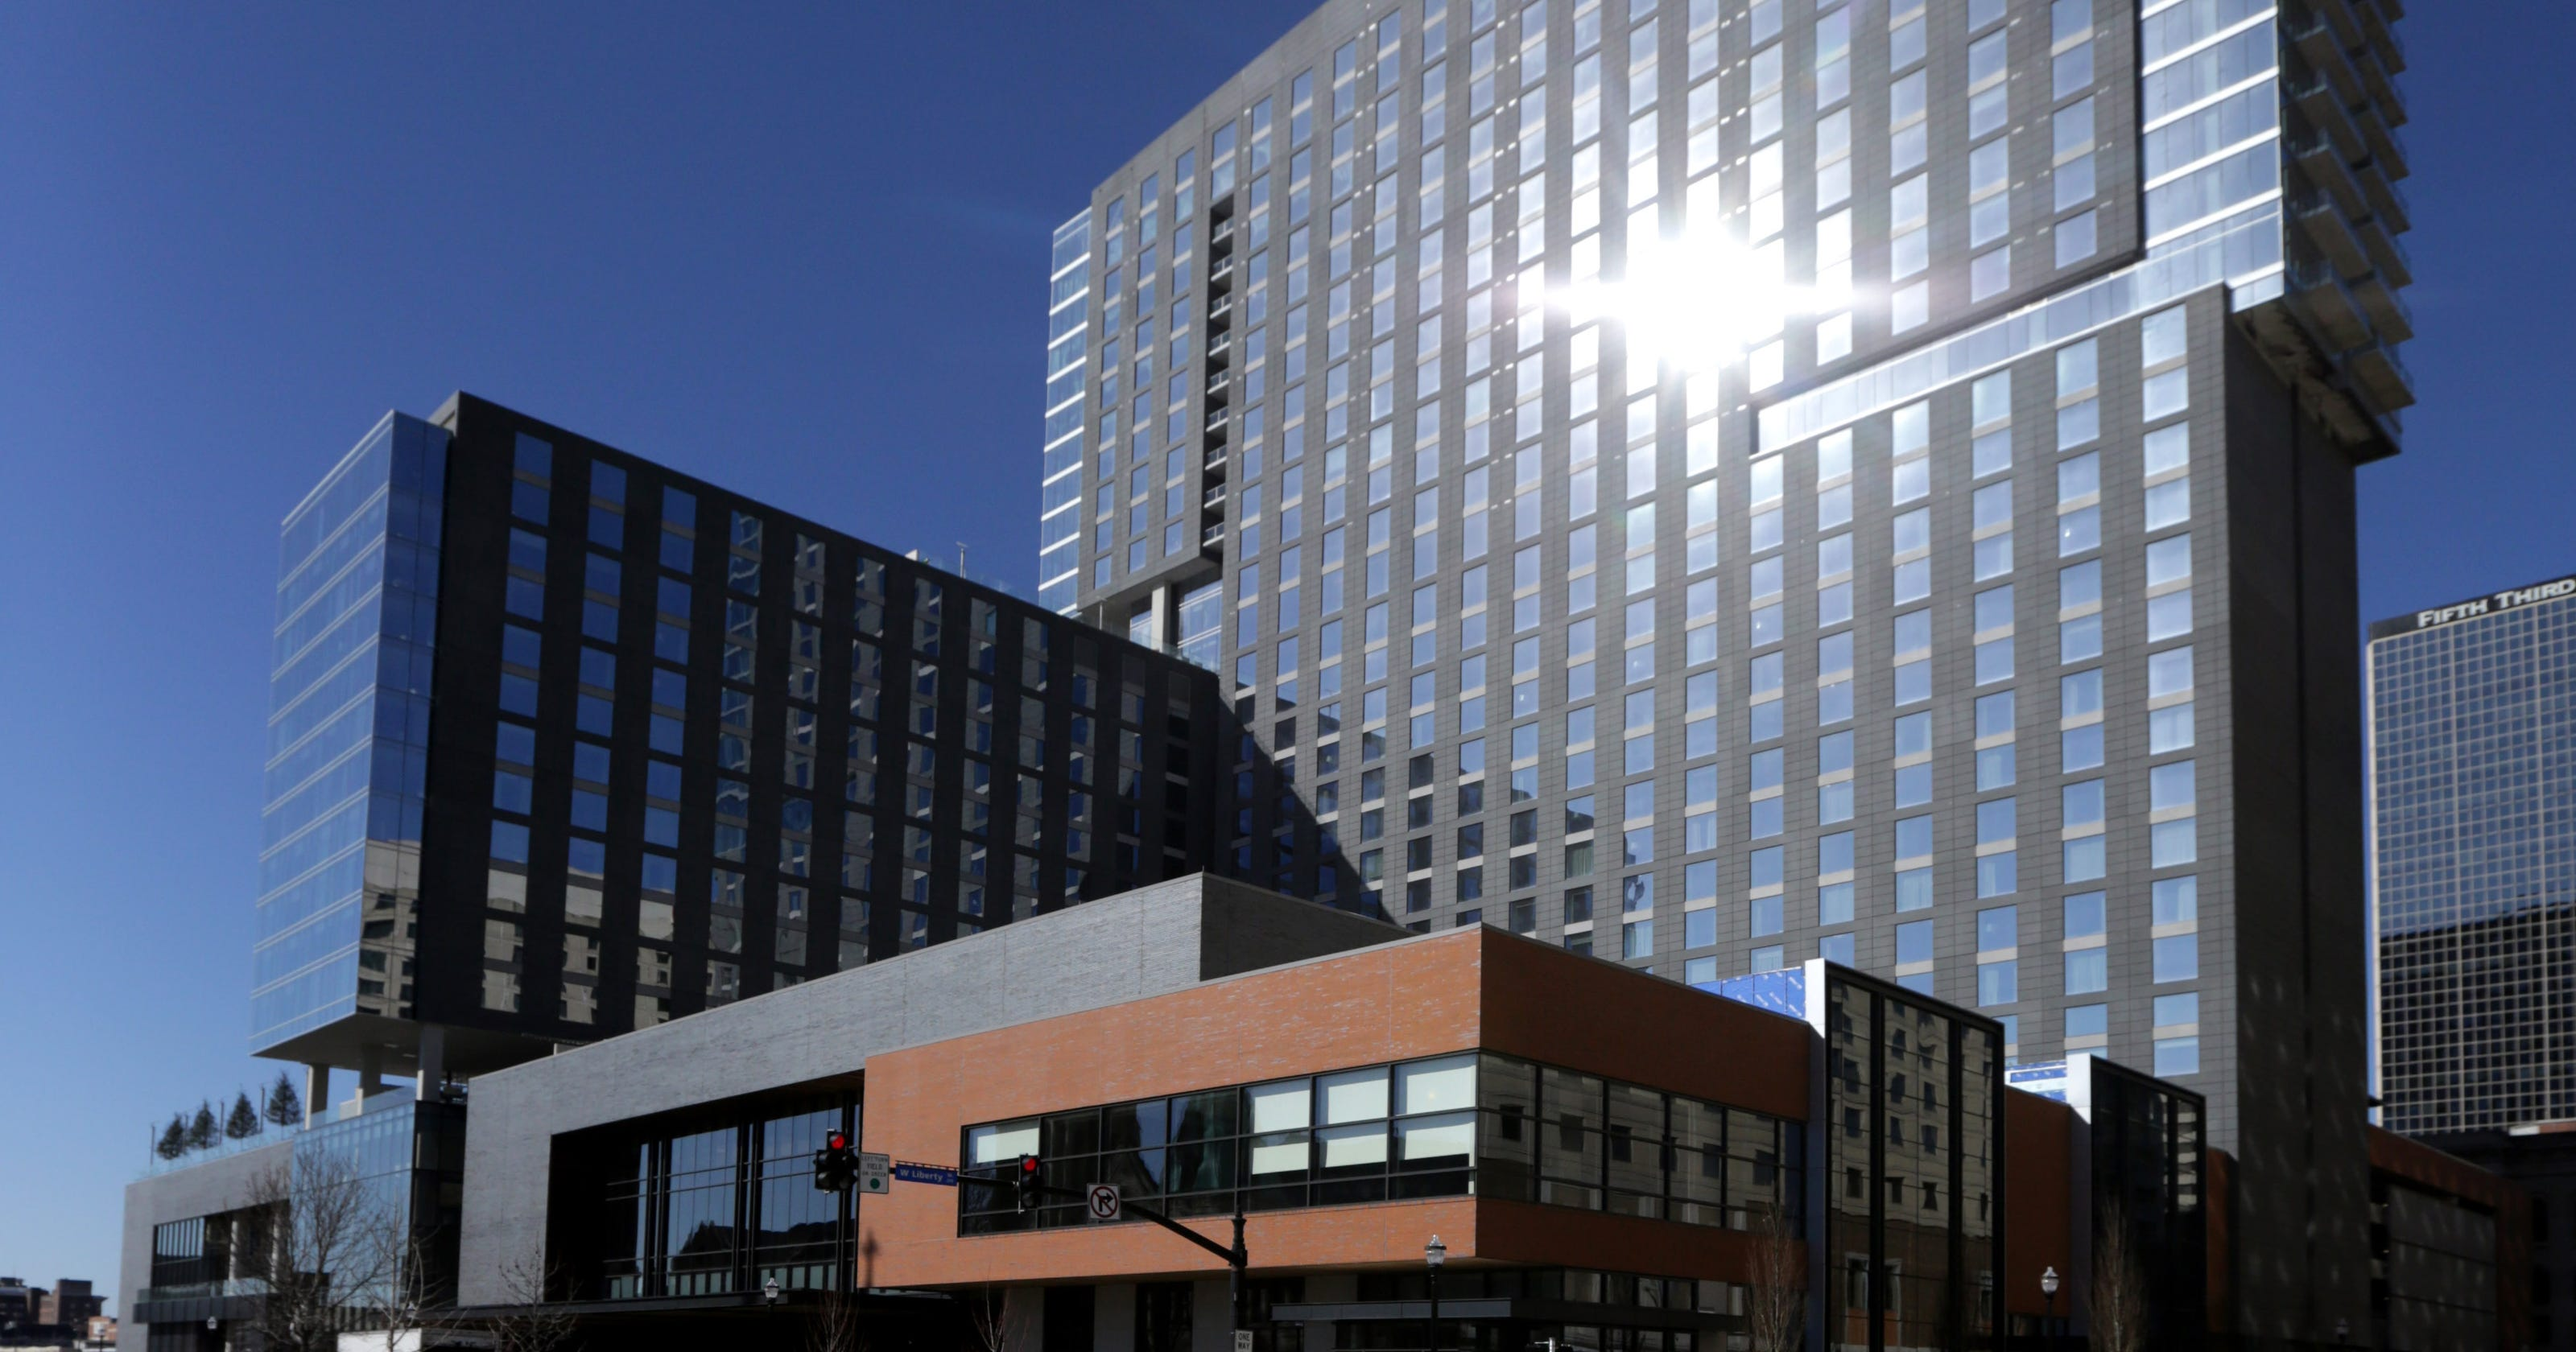 Downtown Louisville continues to change with the Omni Hotel